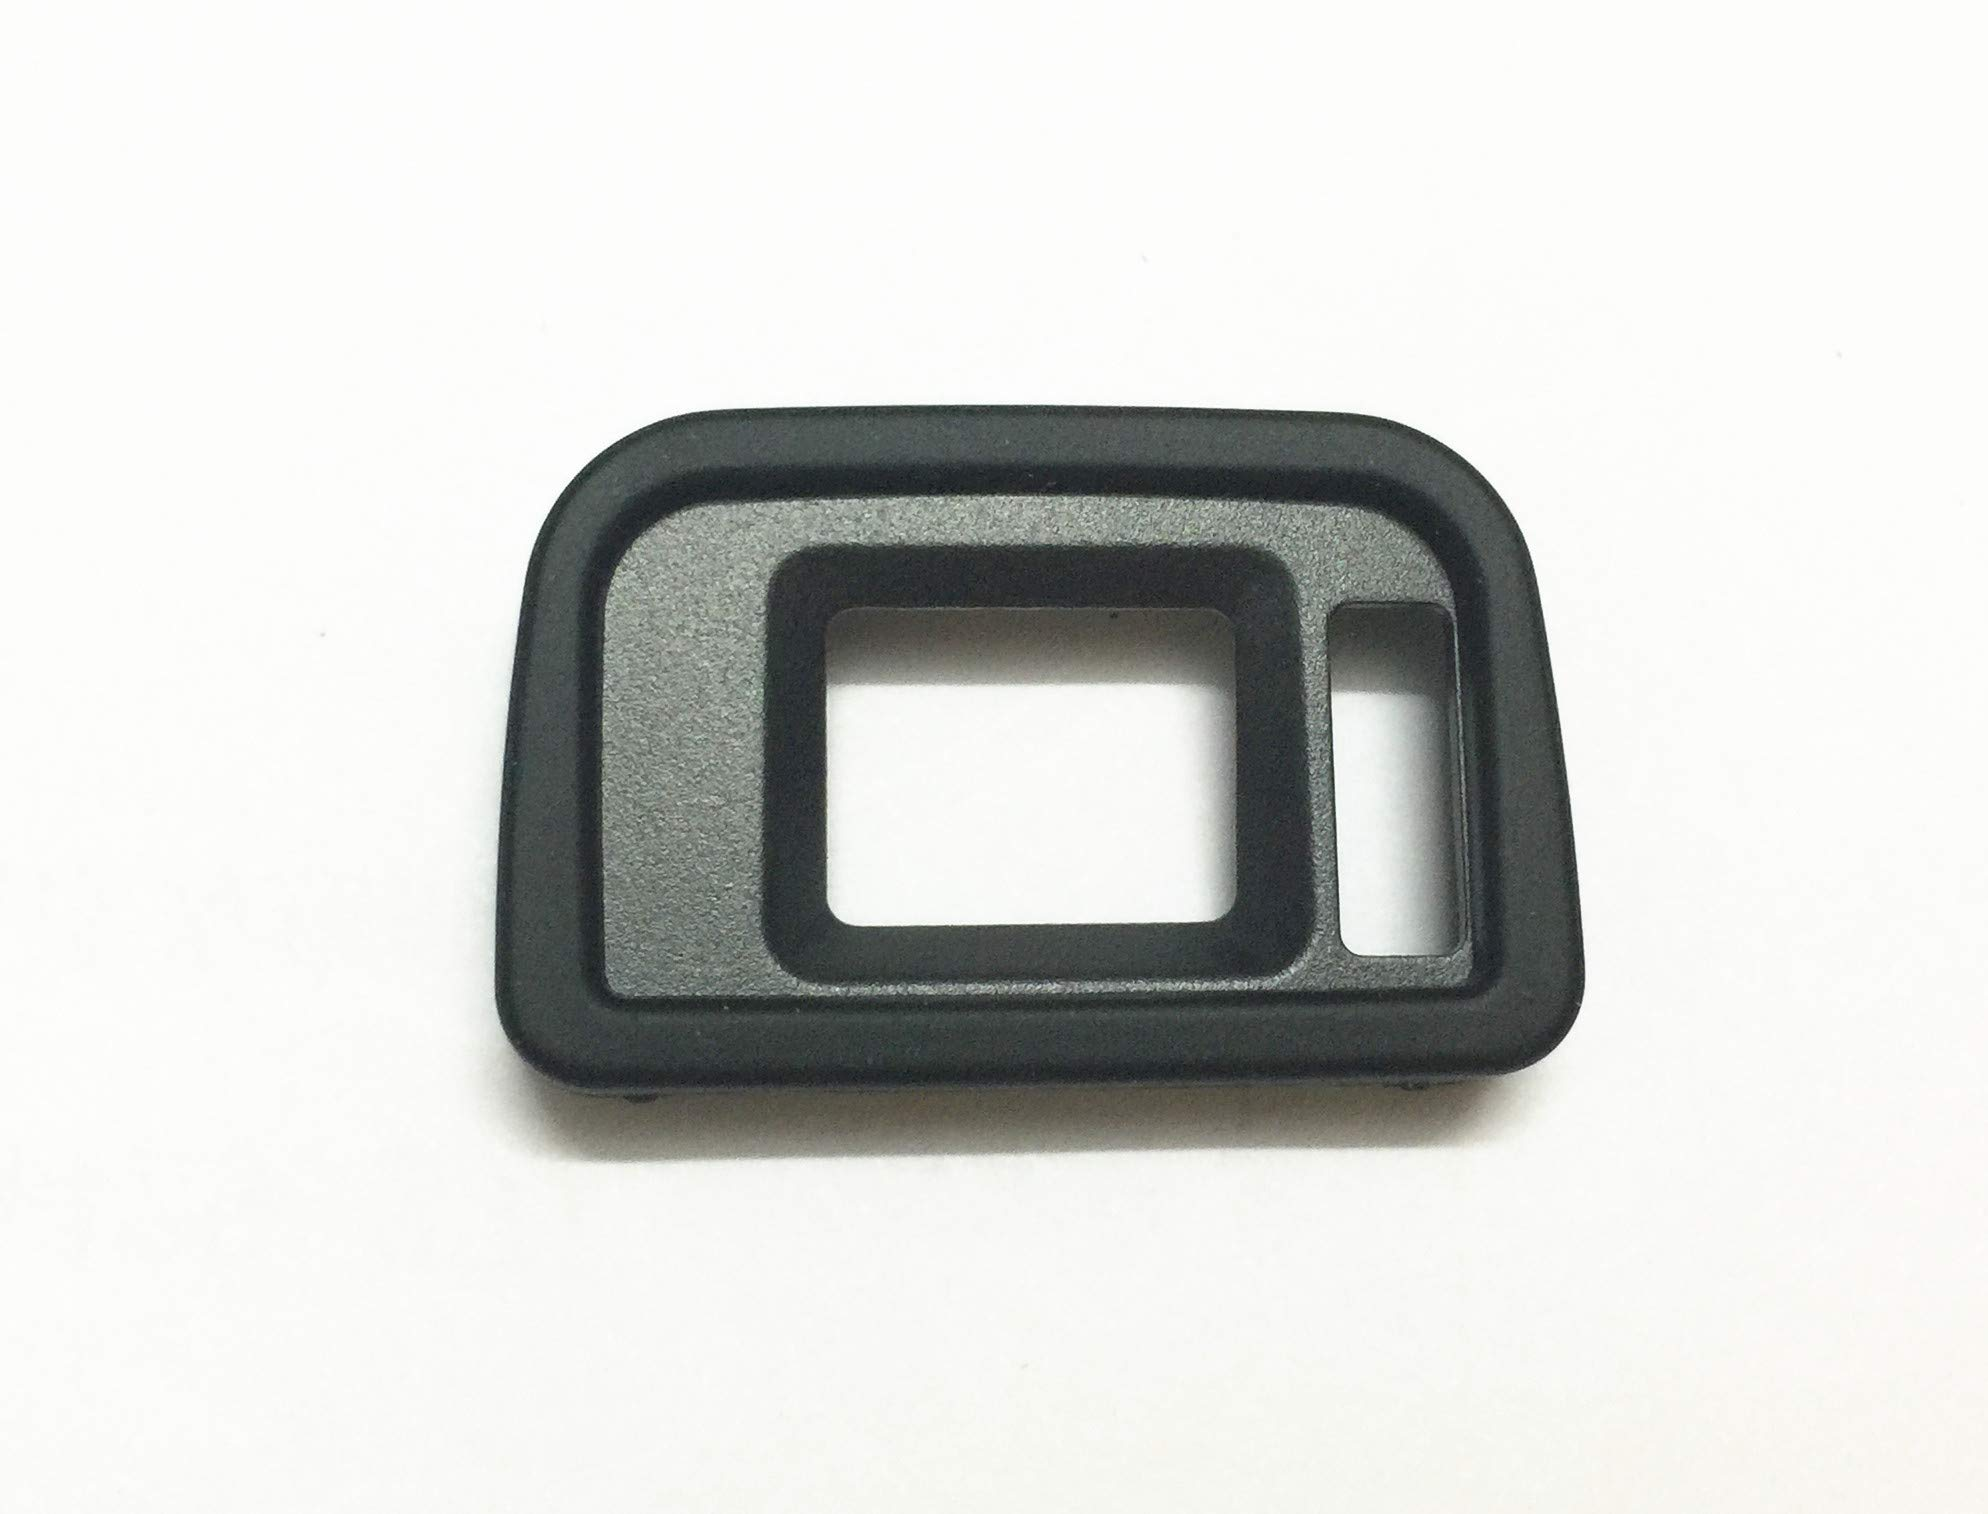 Replacement New Viewfinder Eye Cup Cap Eyecup Rubber VGQ0Q78 for Panasonic Lumix DMC-GH2 by mEOZIADao